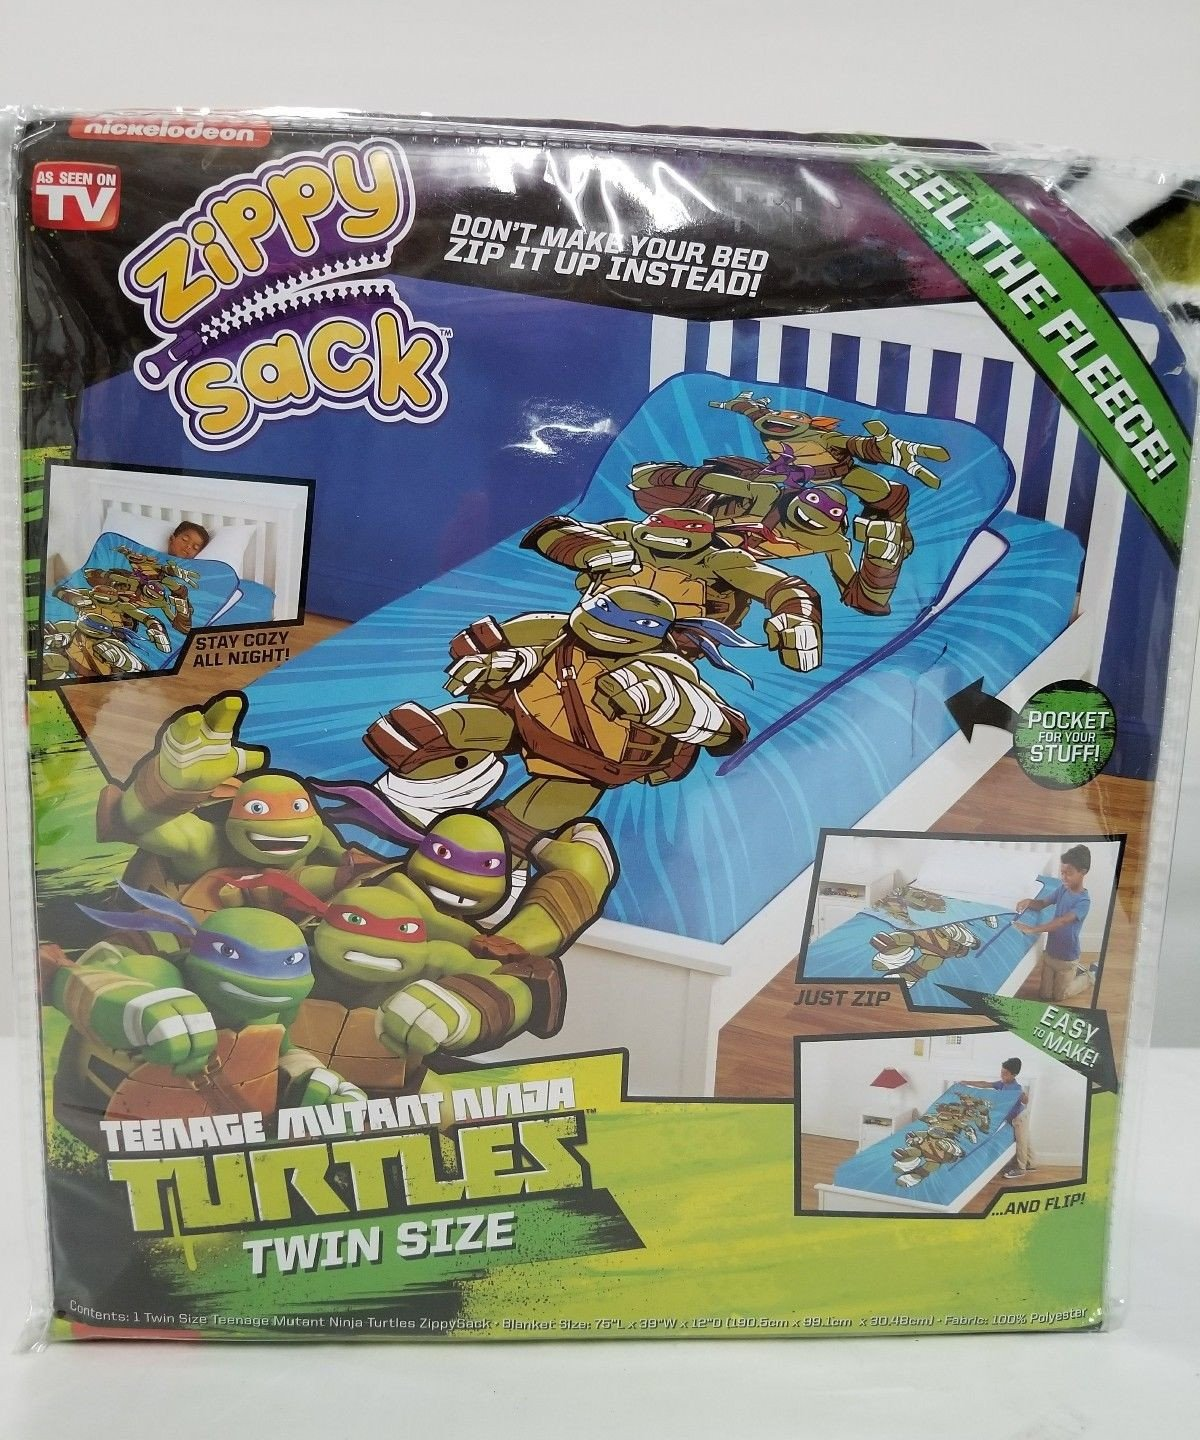 Ninja Turtle Bedroom Set Elegant Zippysack Teenage Mutant Ninja Turtles Twin Size Zippy Sack